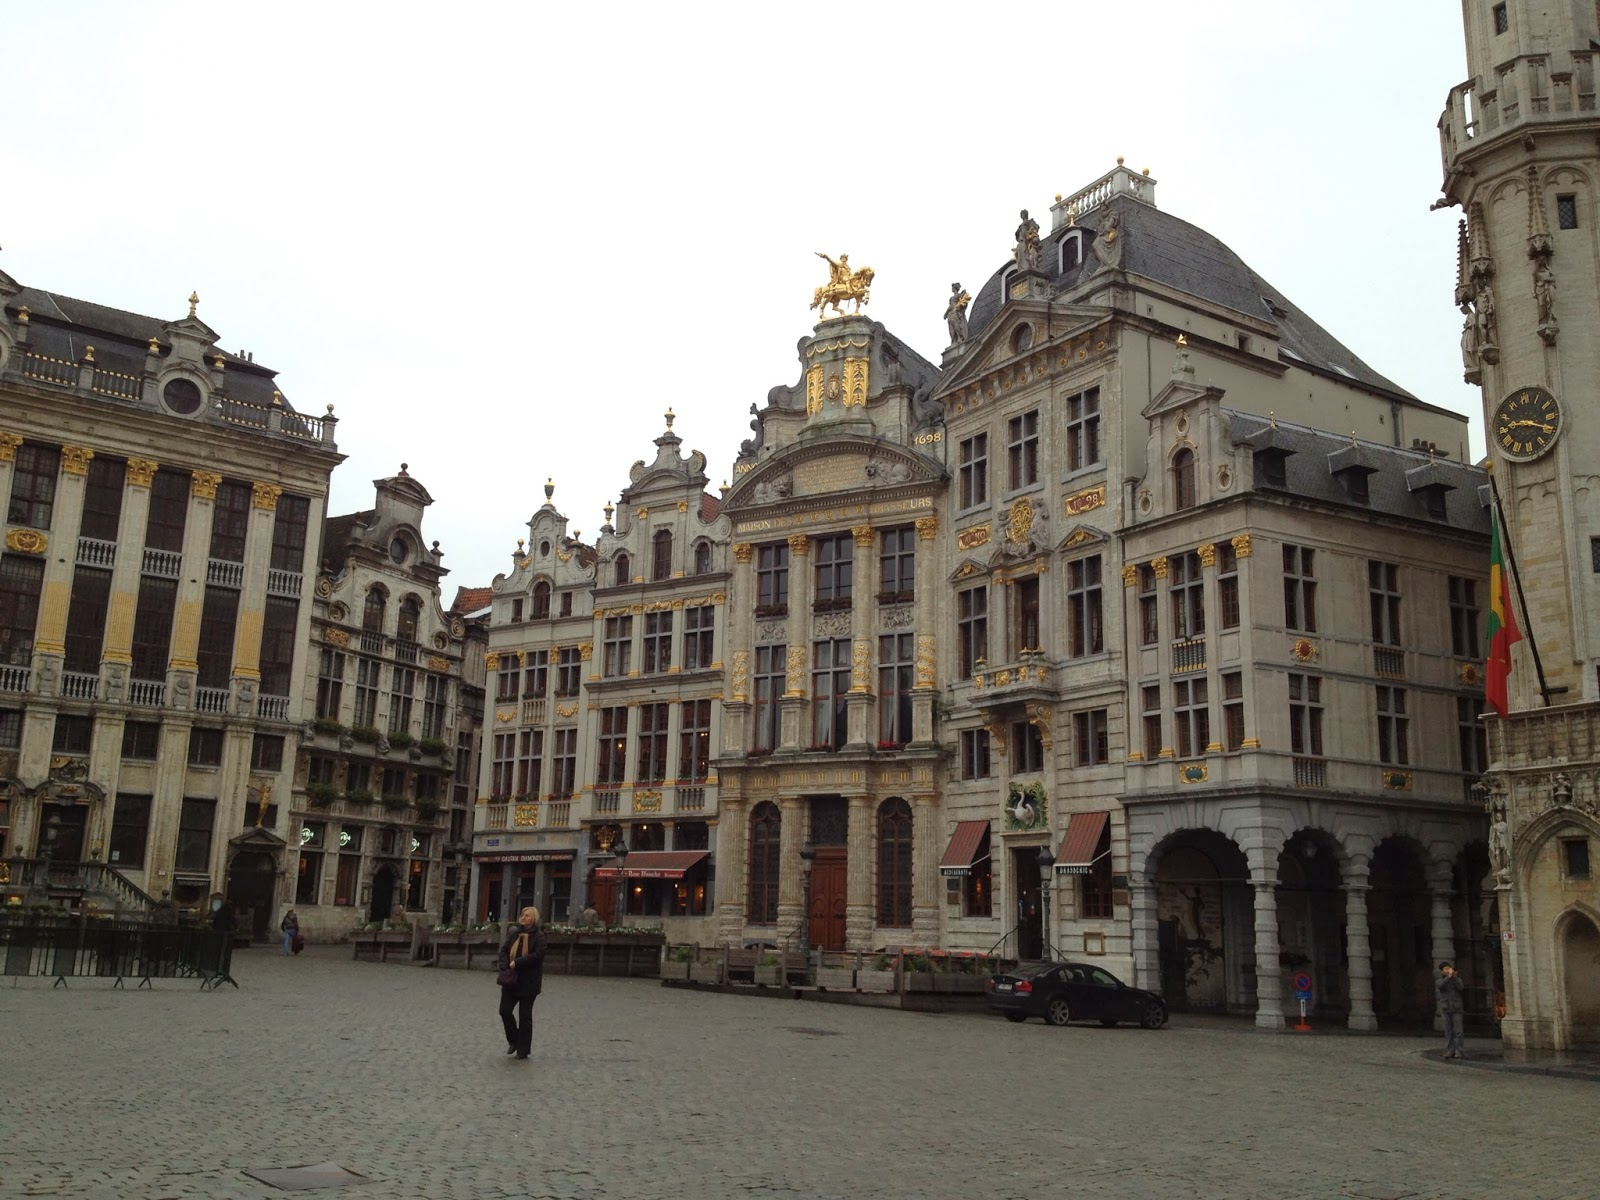 Brussels - Guild houses in Grand Place